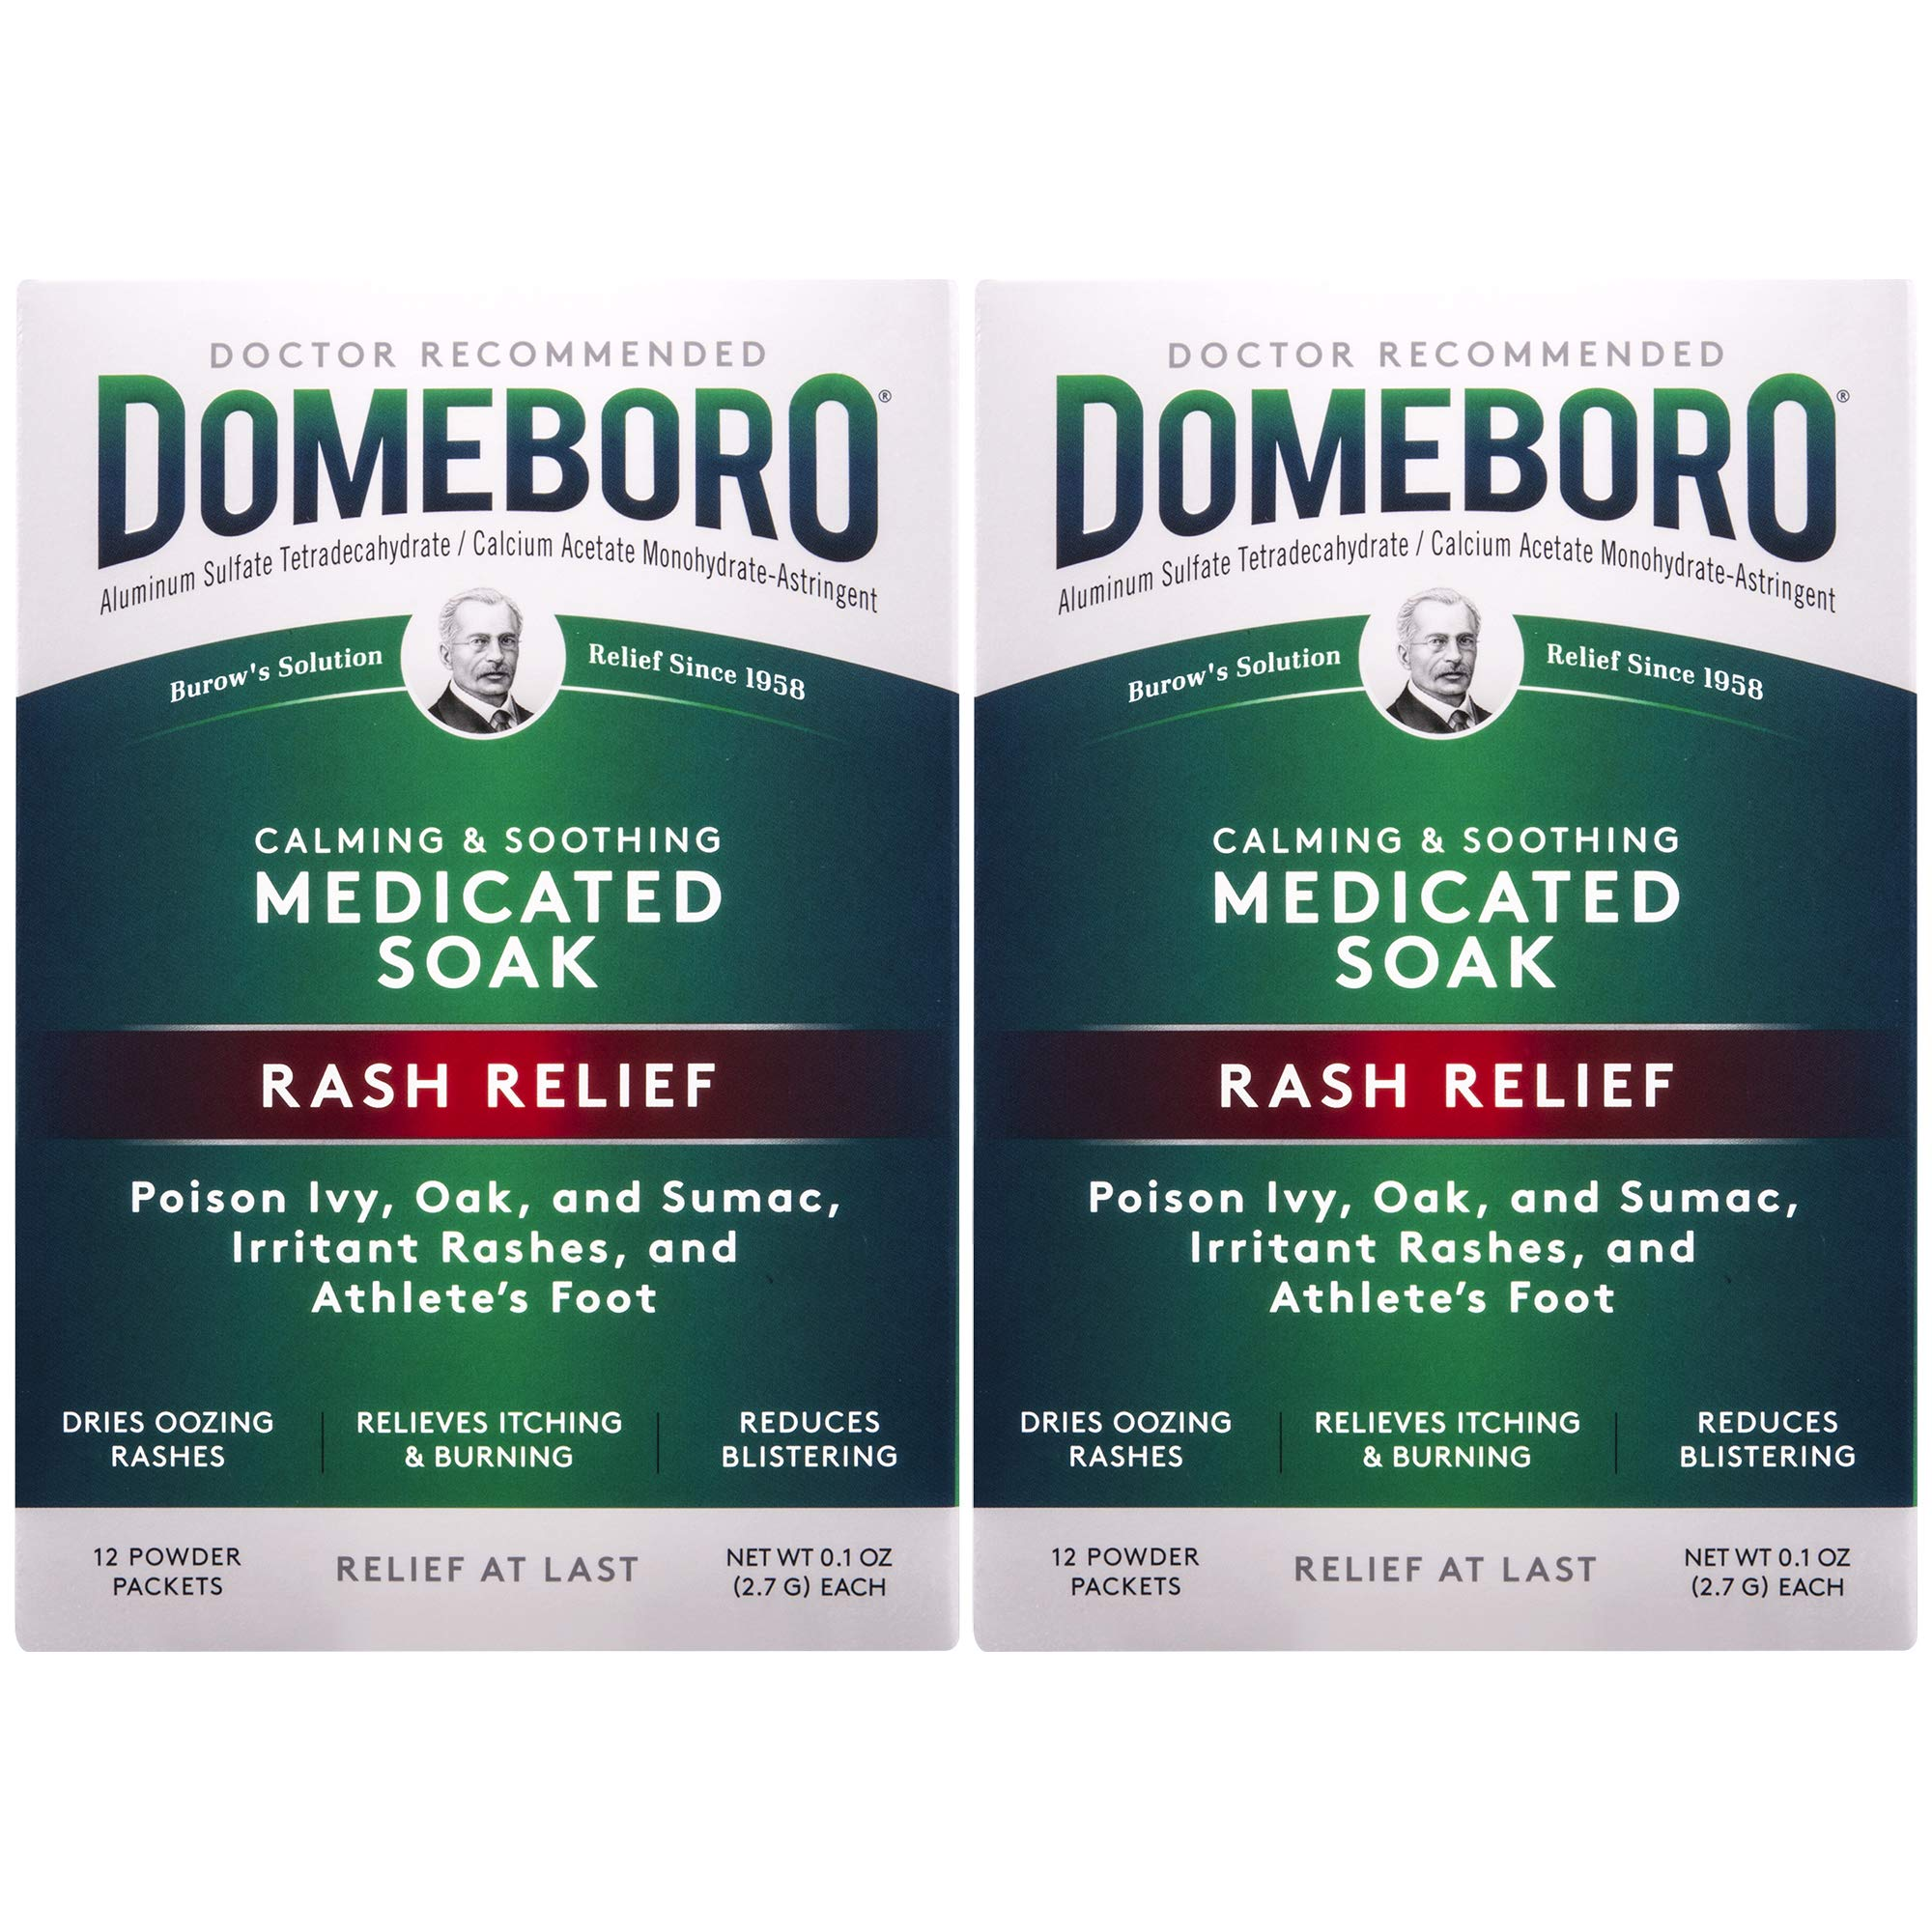 Domeboro Medicated Soak Rash Relief (Burow's Solution), 12 Powder Packets (Pack of 2) by Domeboro